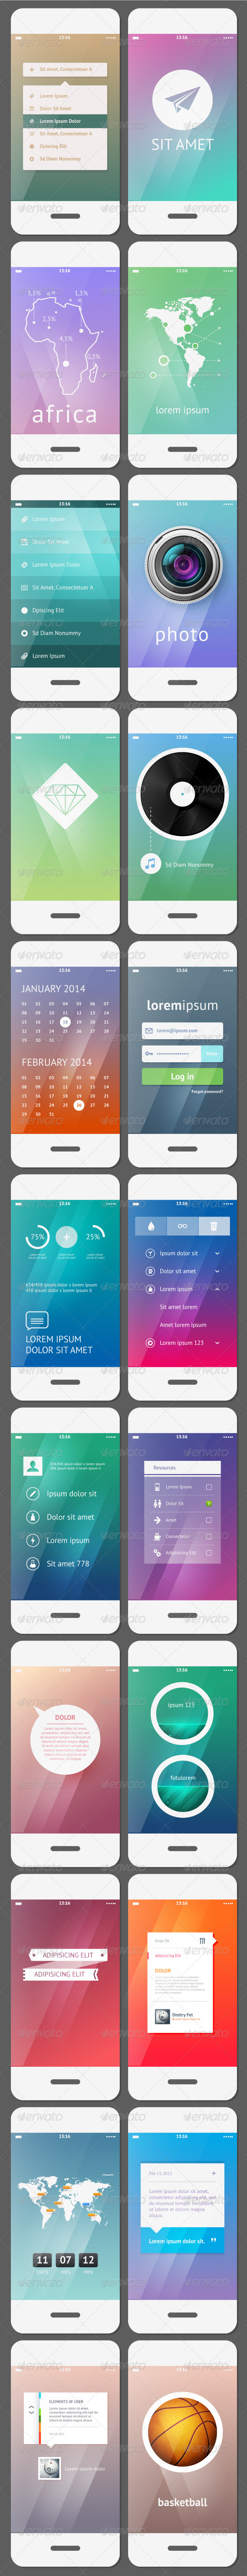 Mobile User Interface Template - Communications Technology